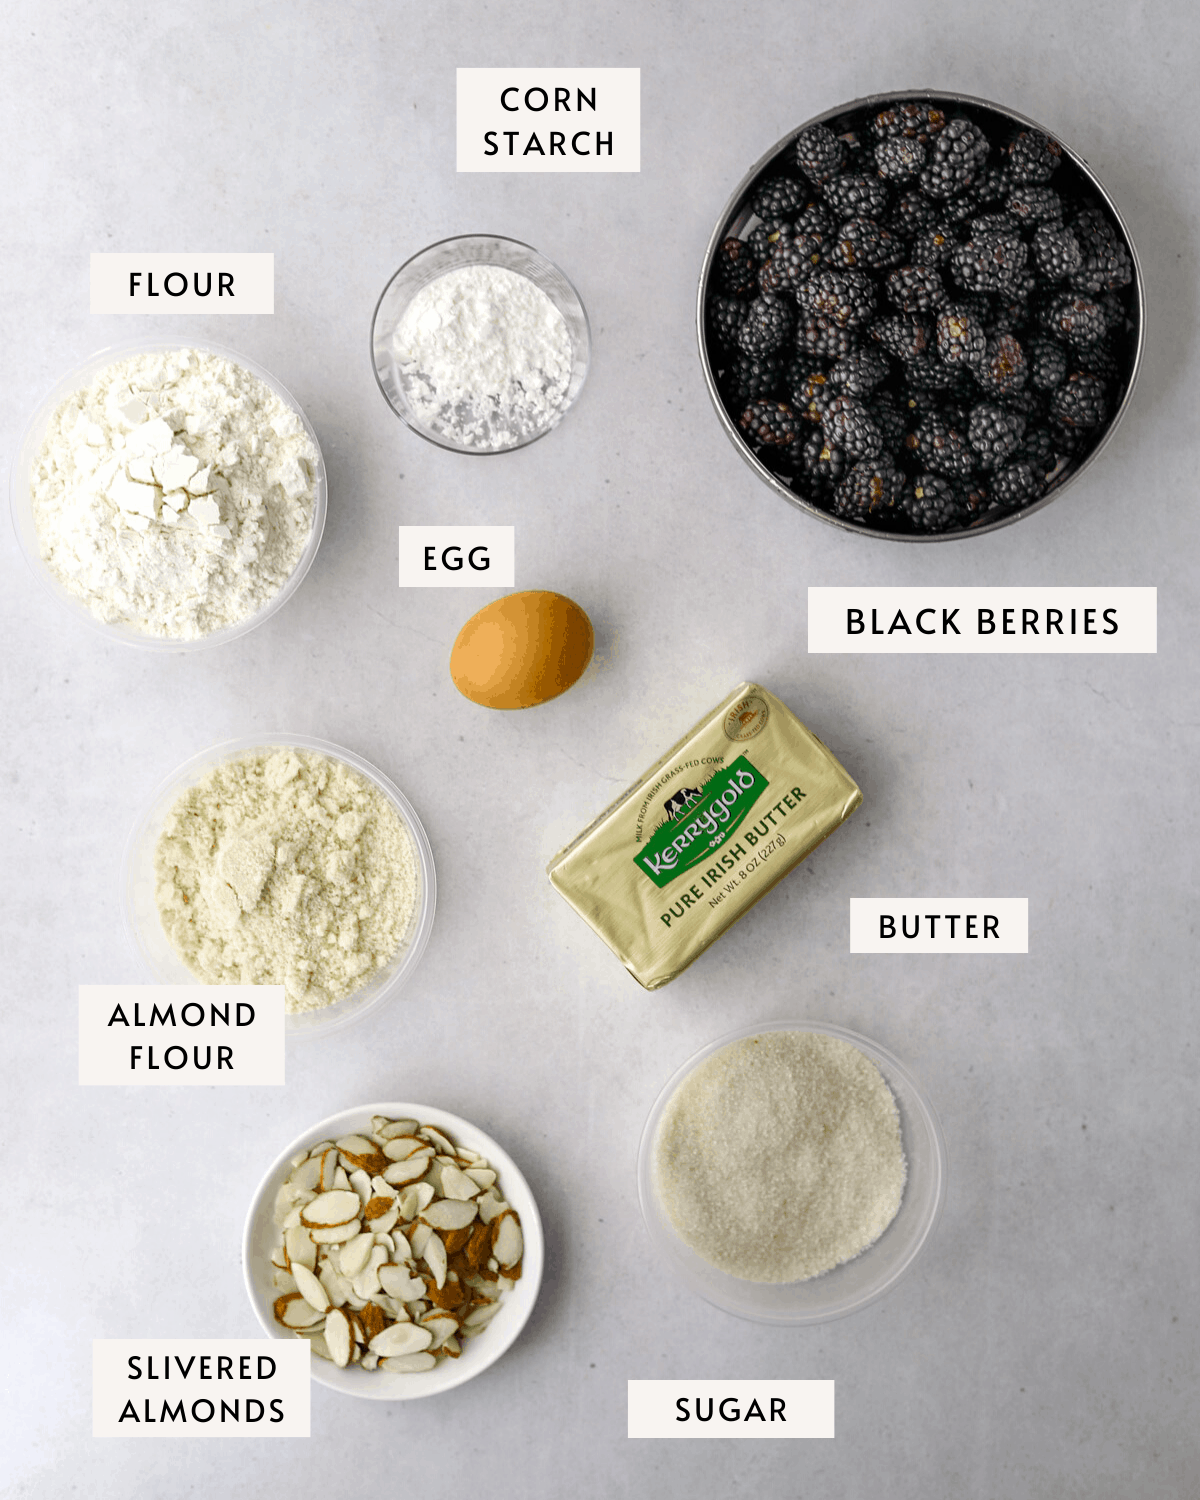 recipe ingredients measured into bowls: black berries, egg, butter, corn starch, flour and slivered almonds